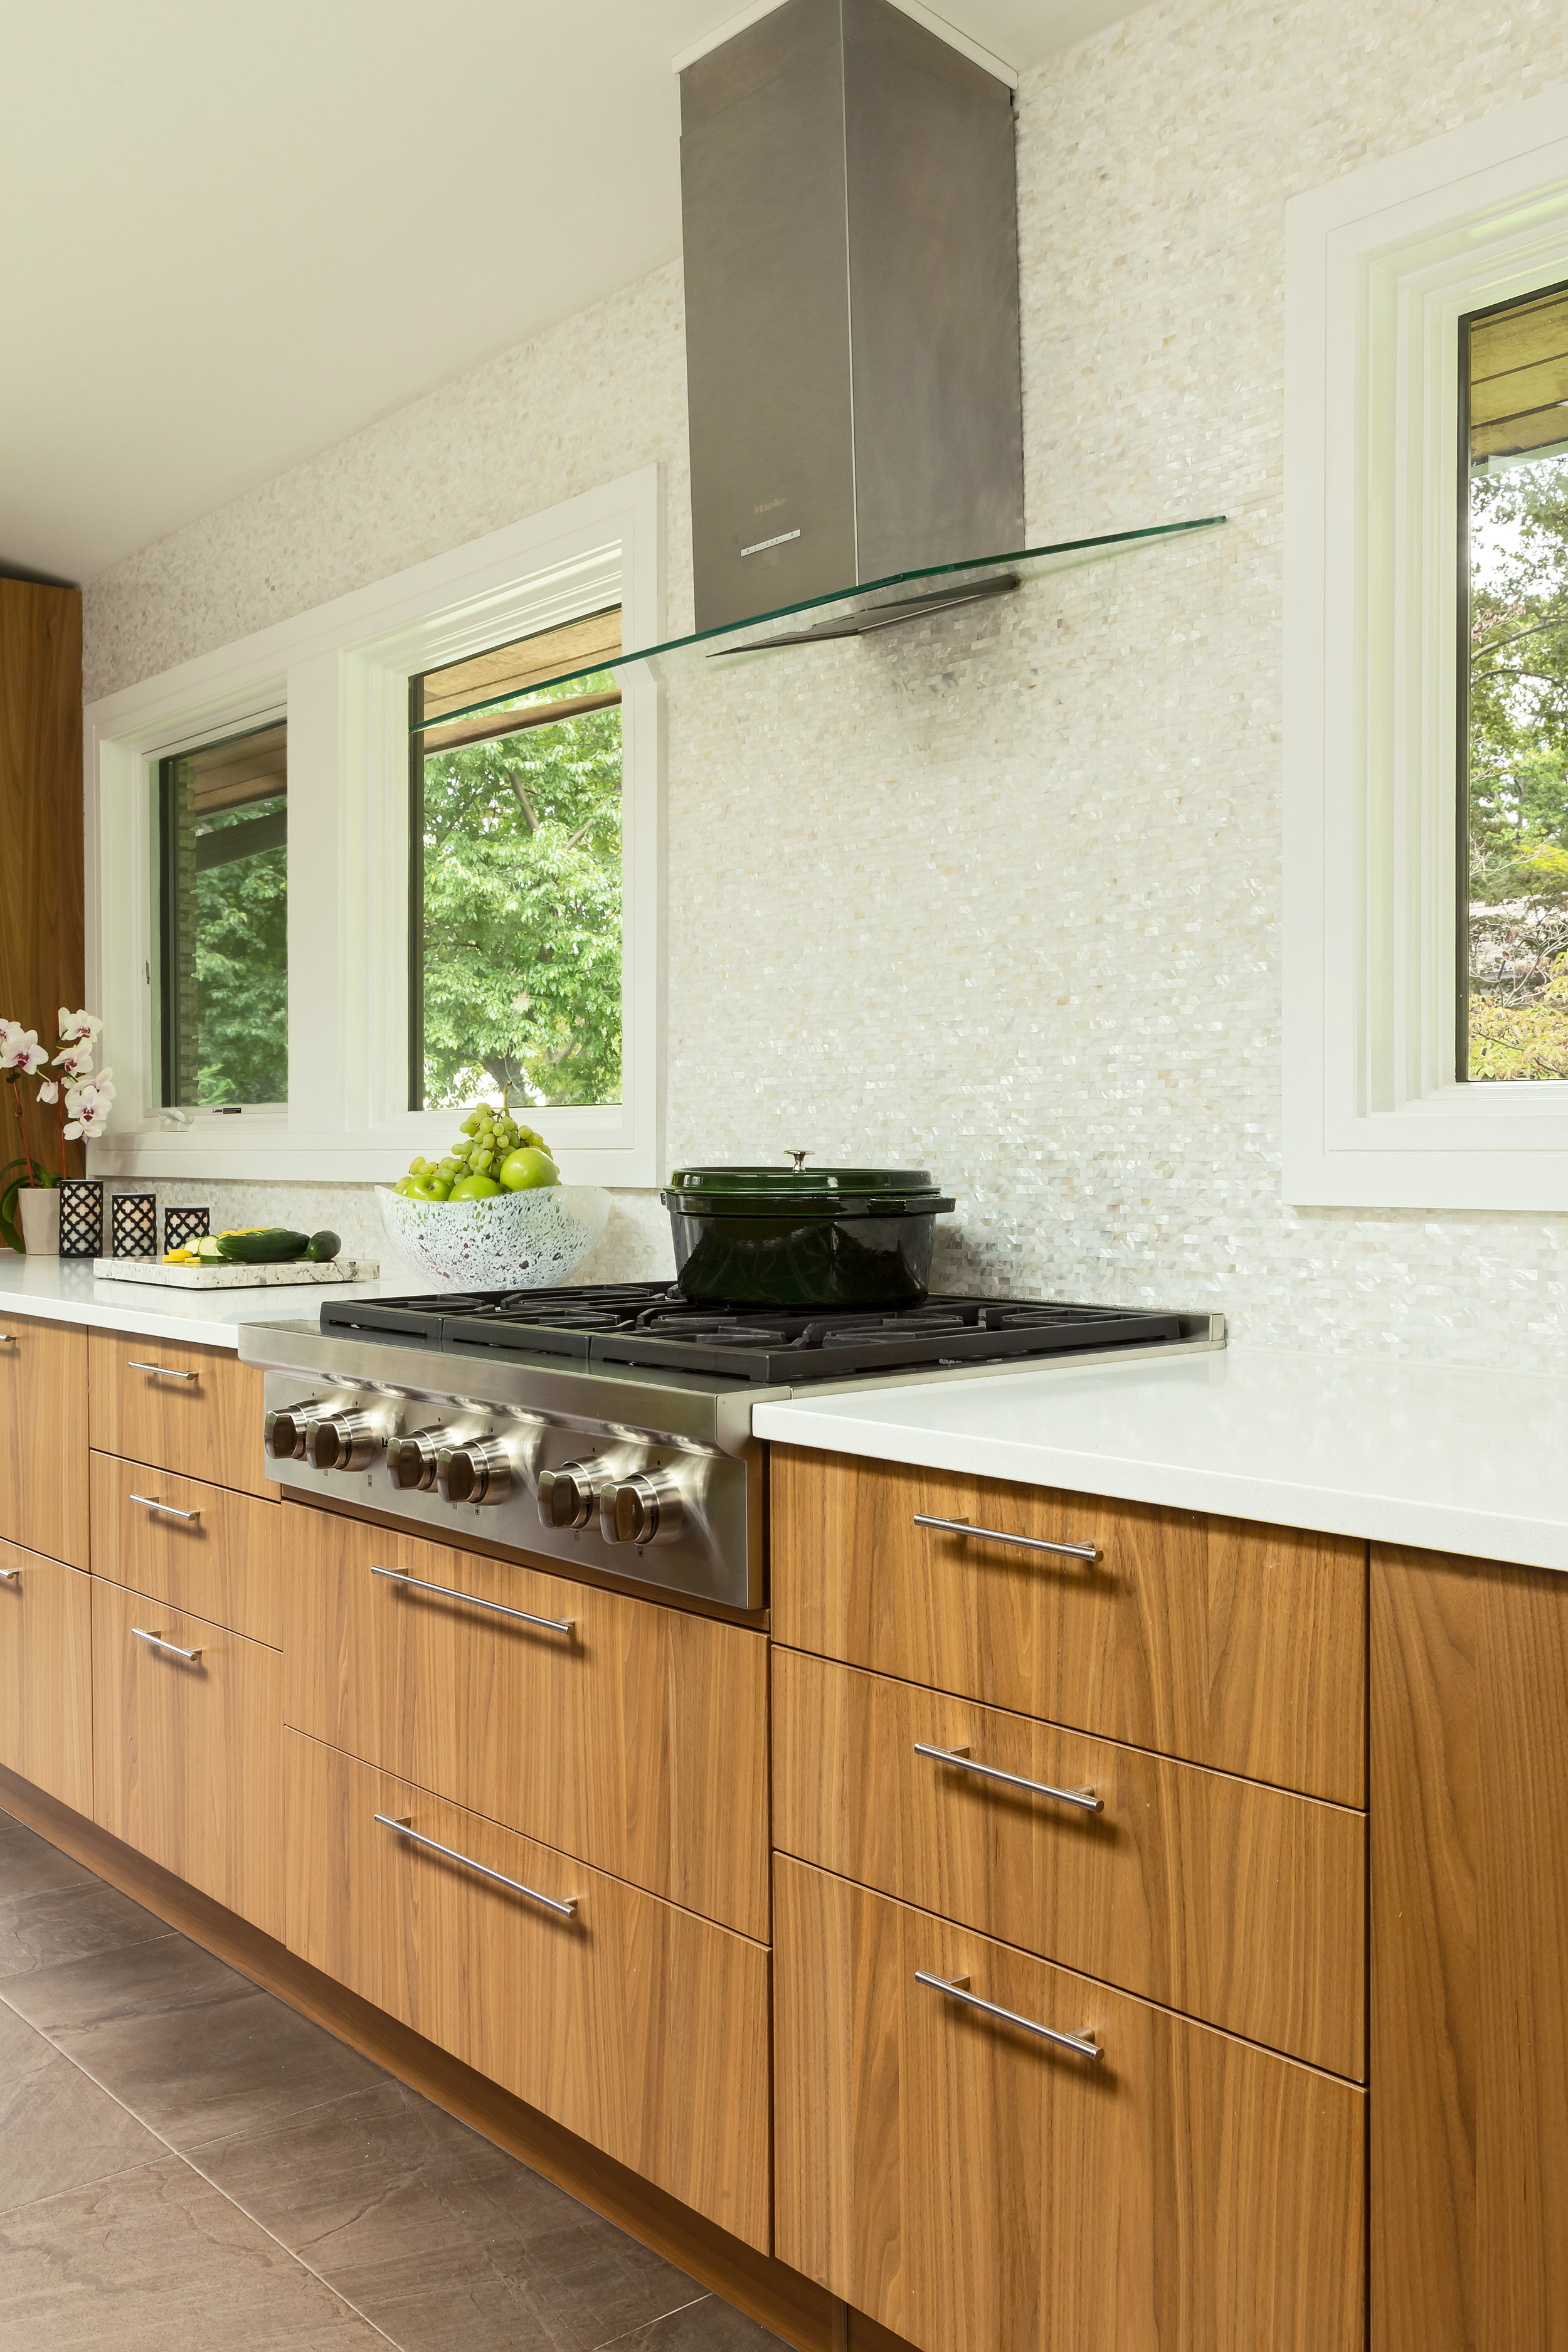 Contemporary style kitchen with wooden pull up drawers